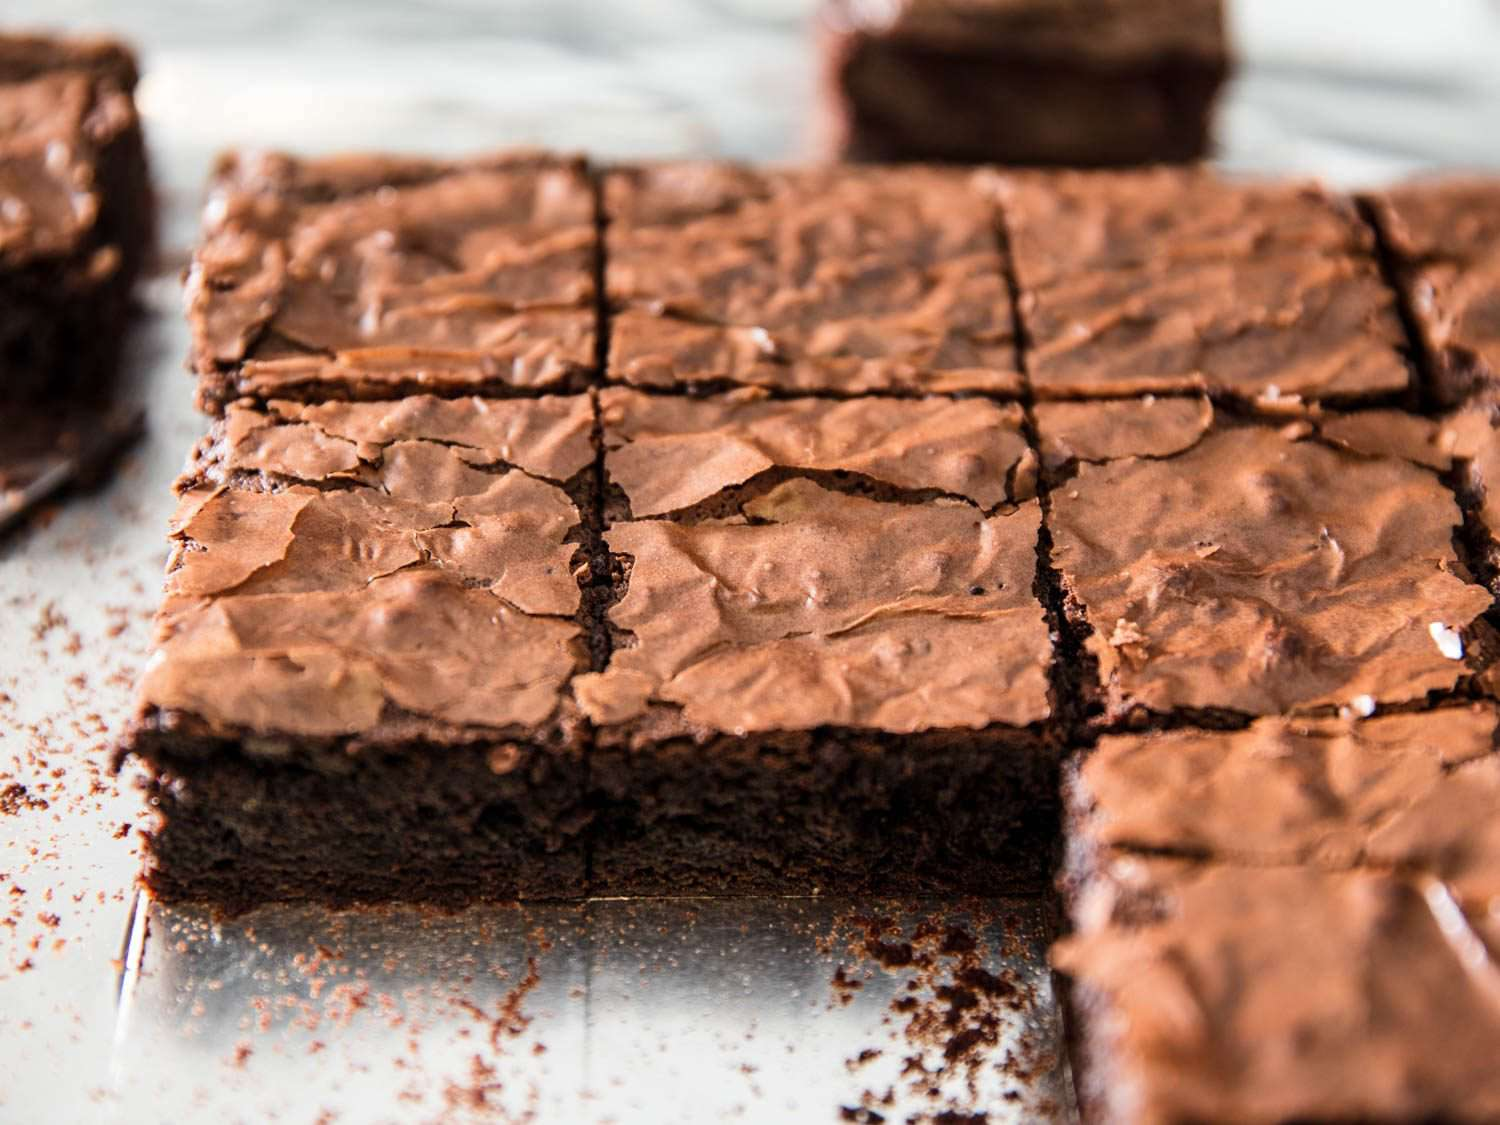 Baked glossy chocolate fudge brownies cut into squares